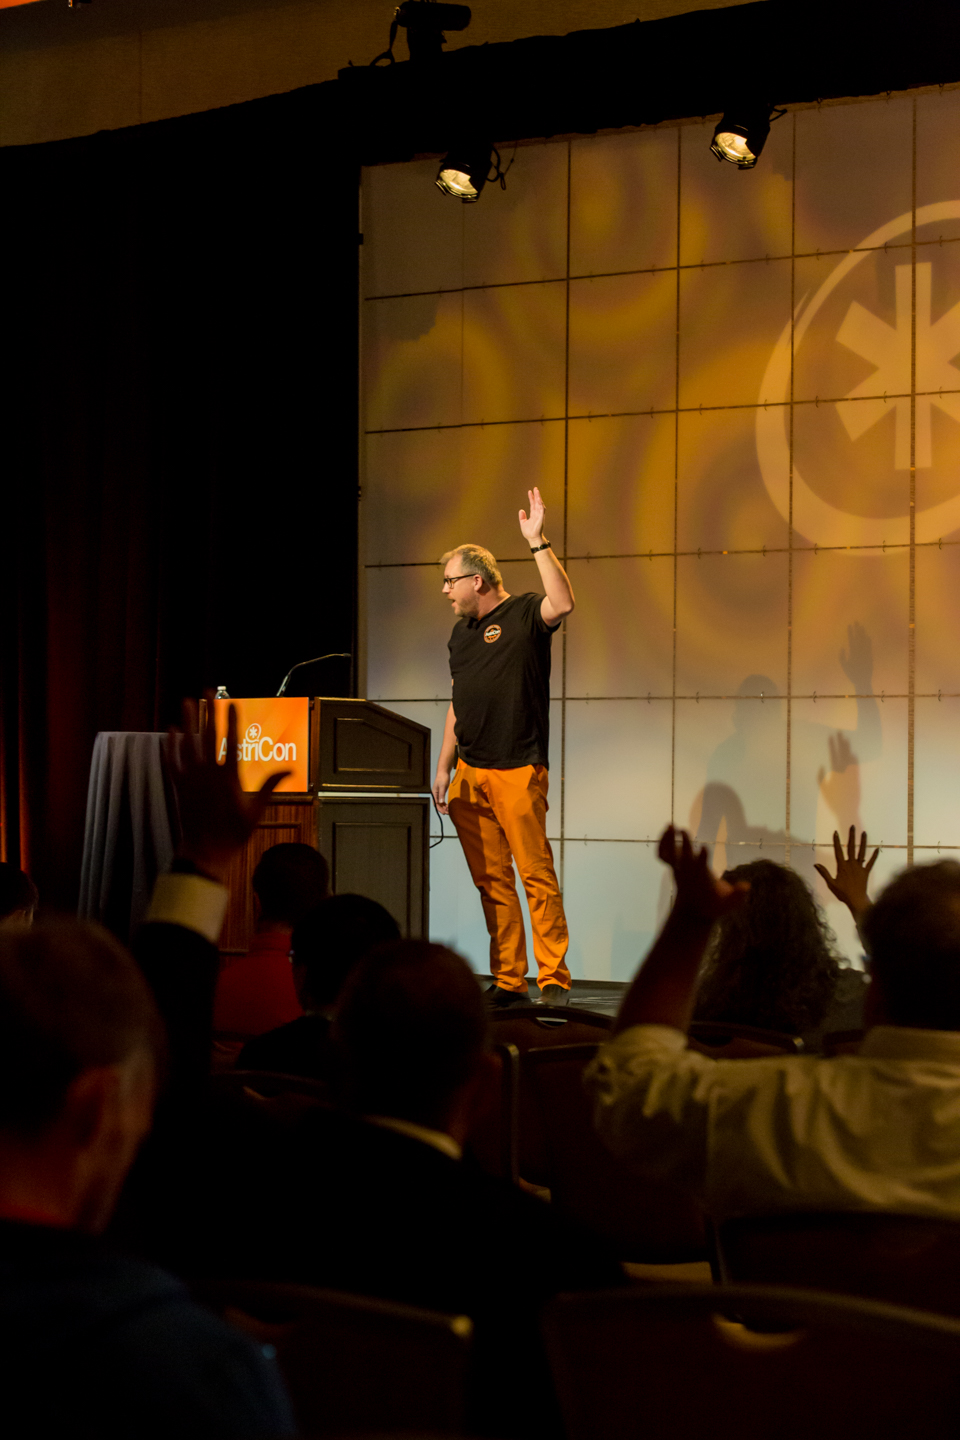 AstriCon-Conference-Orlando-professional-photographer-events-Dynamite-studio-38.jpg